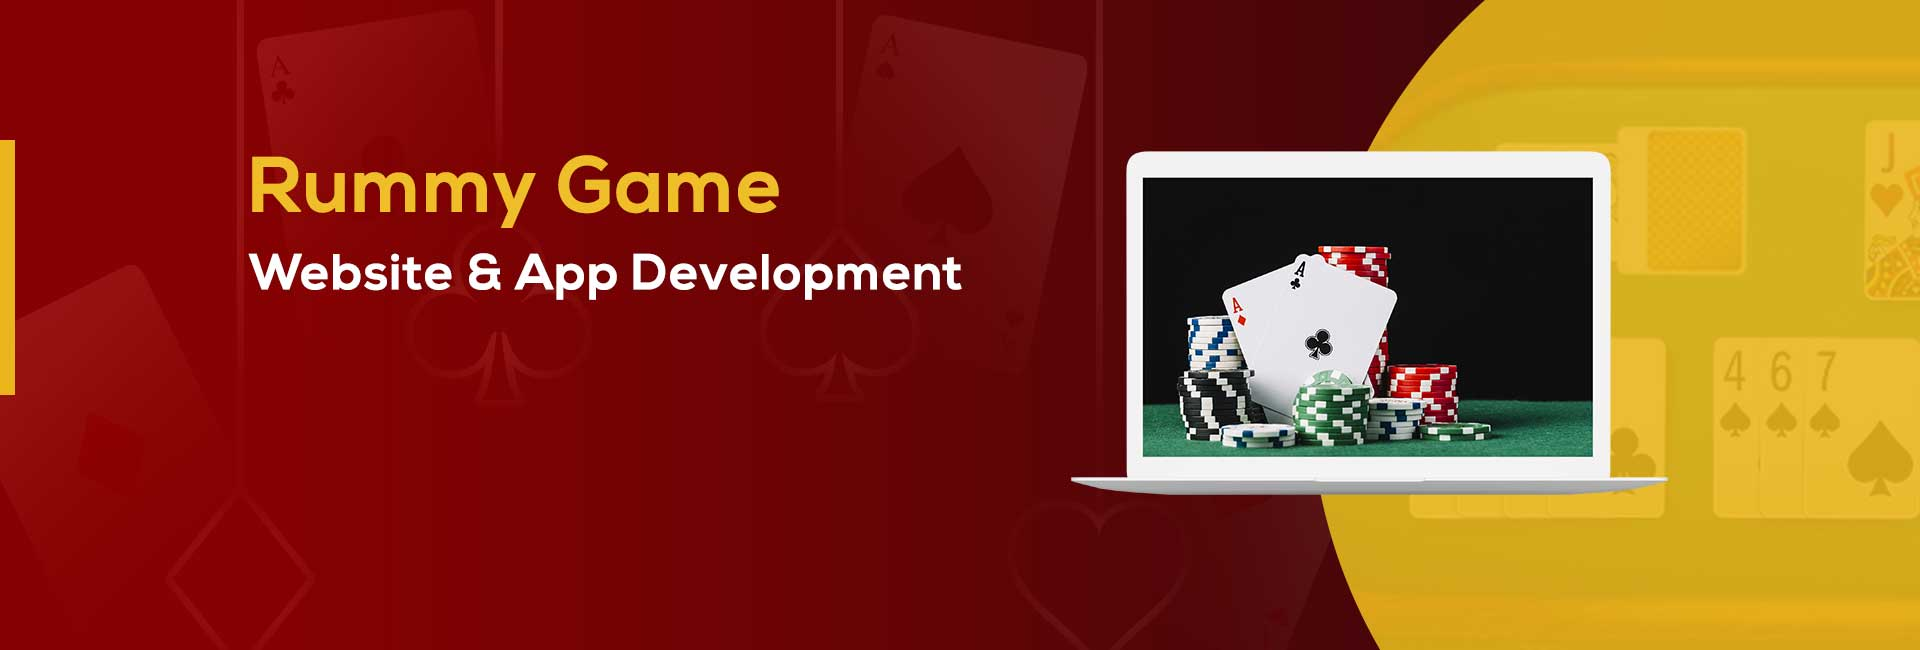 Rummy & Blackjack Game Web & Mobile App Development Company